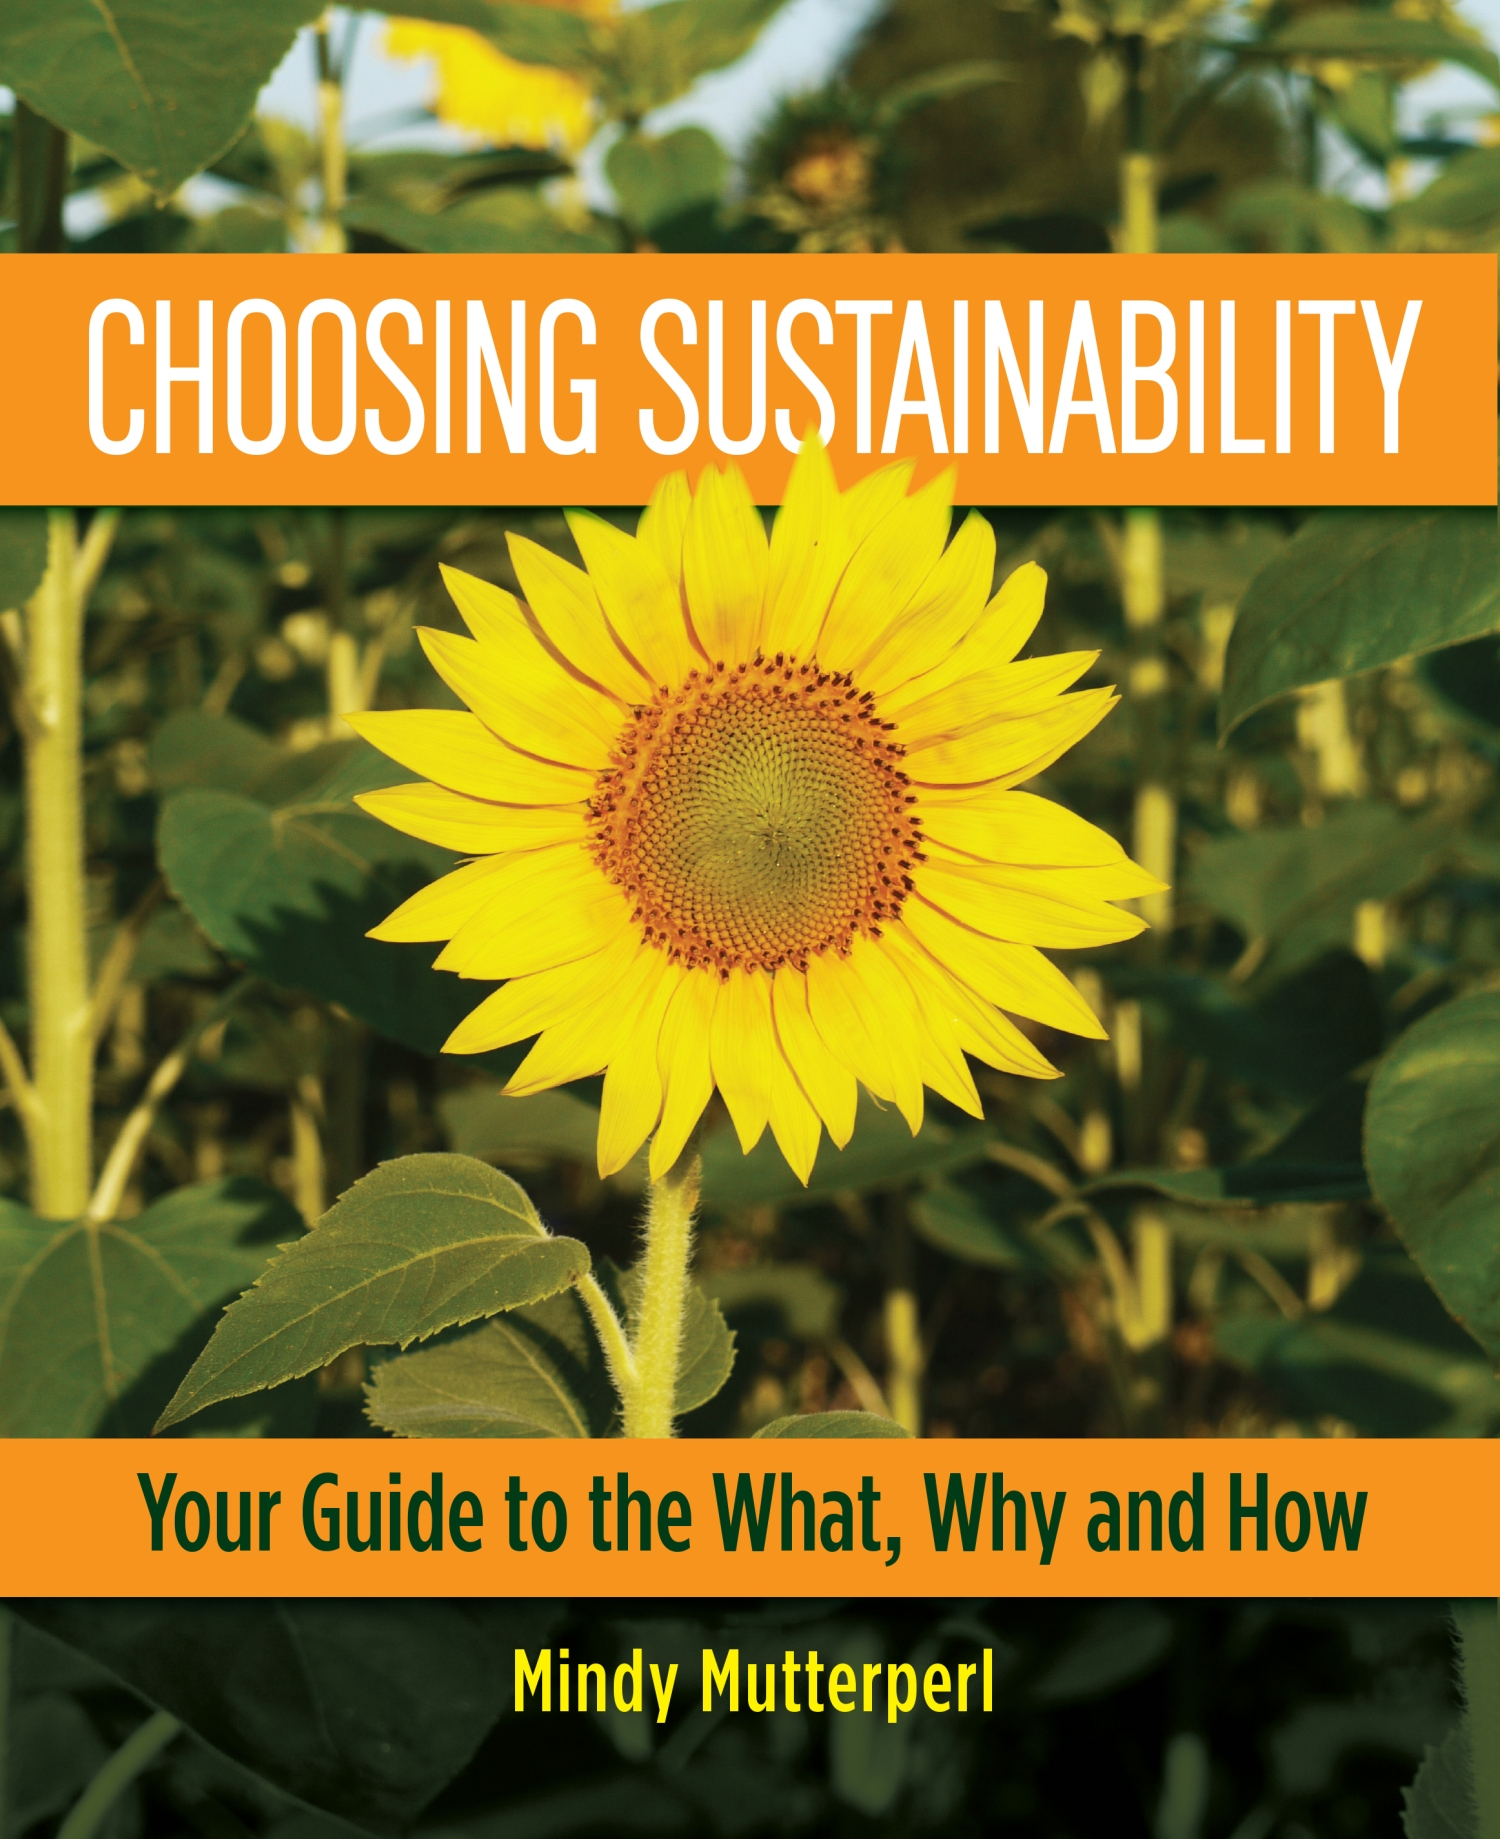 Book on sustainable lifestyle choices